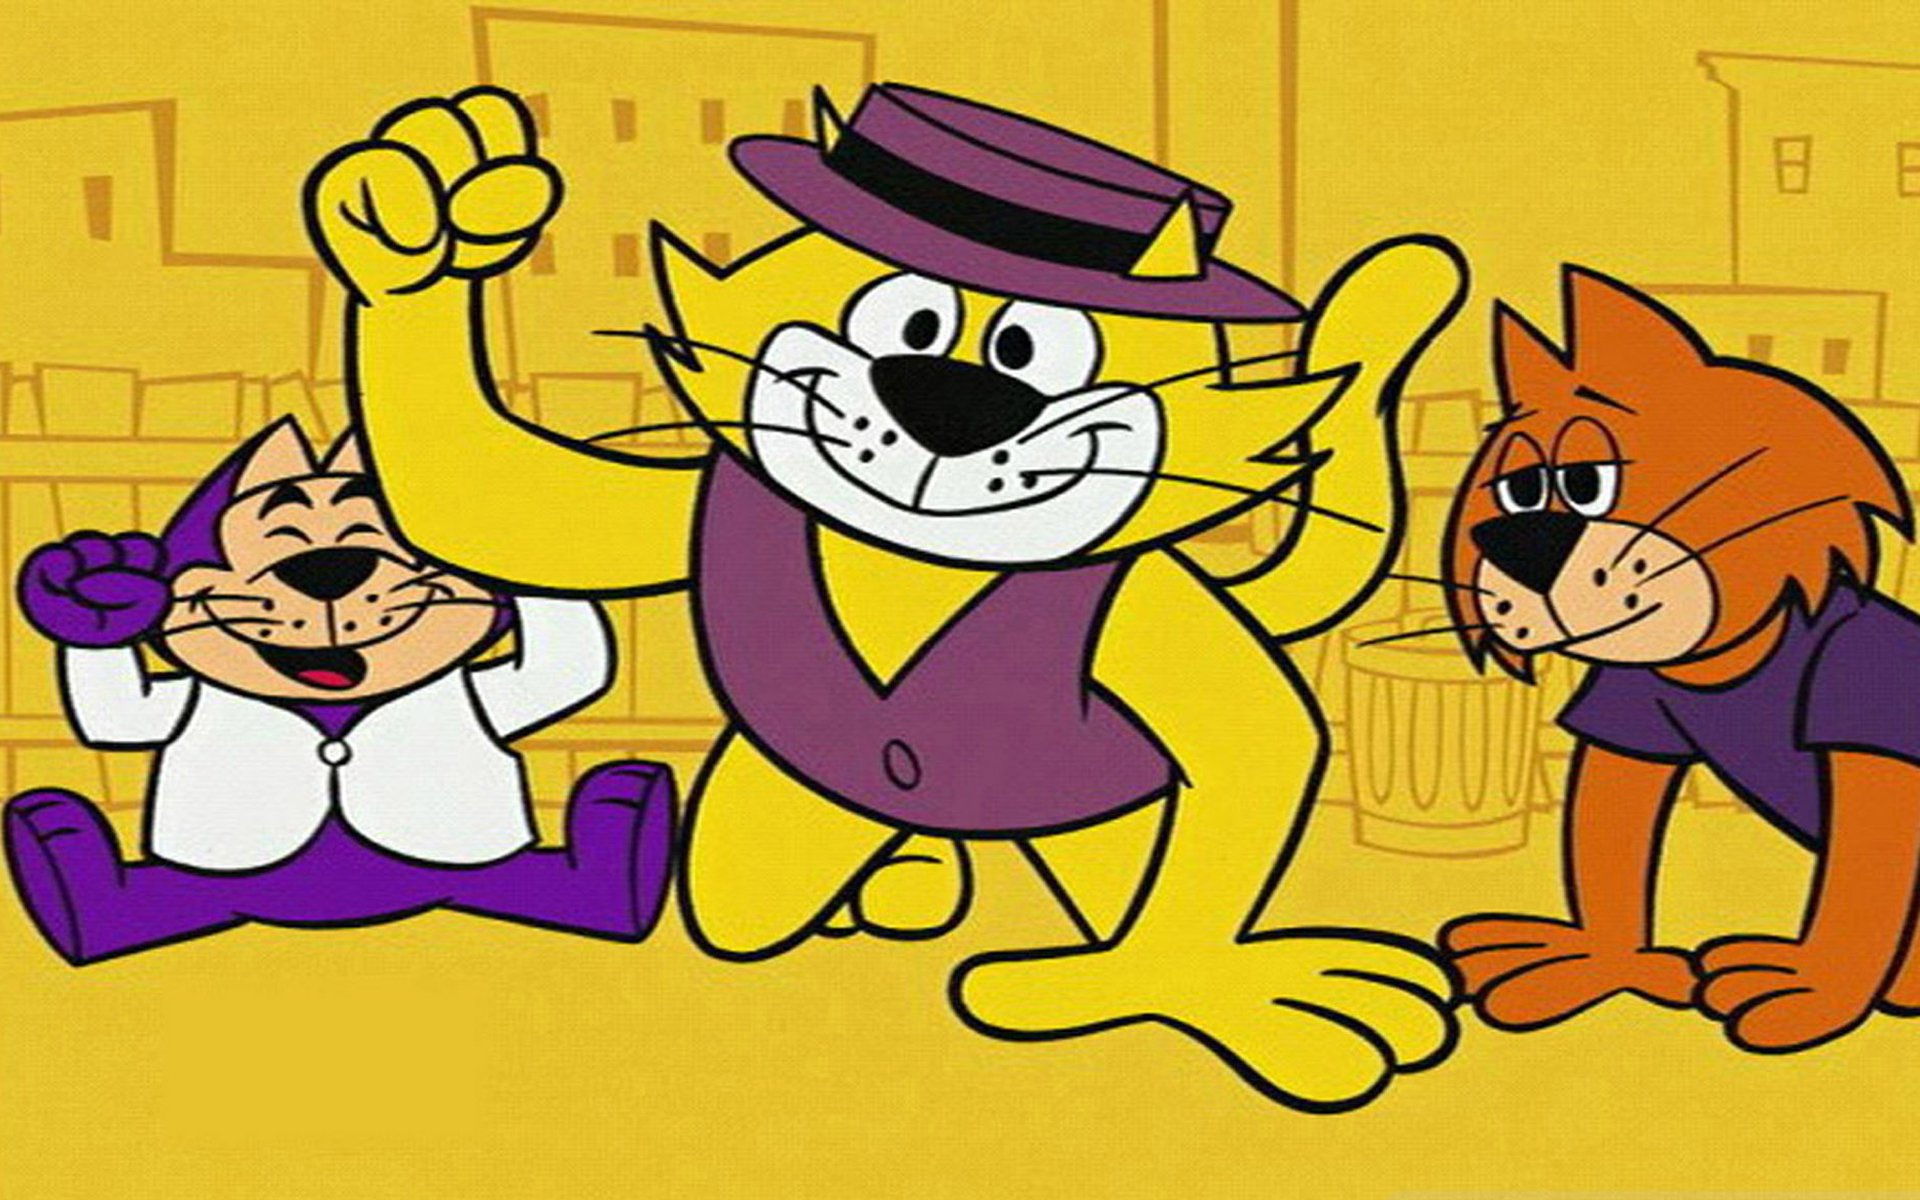 Free Download Old 90s Cartoons 1920x1200 For Your Desktop Mobile